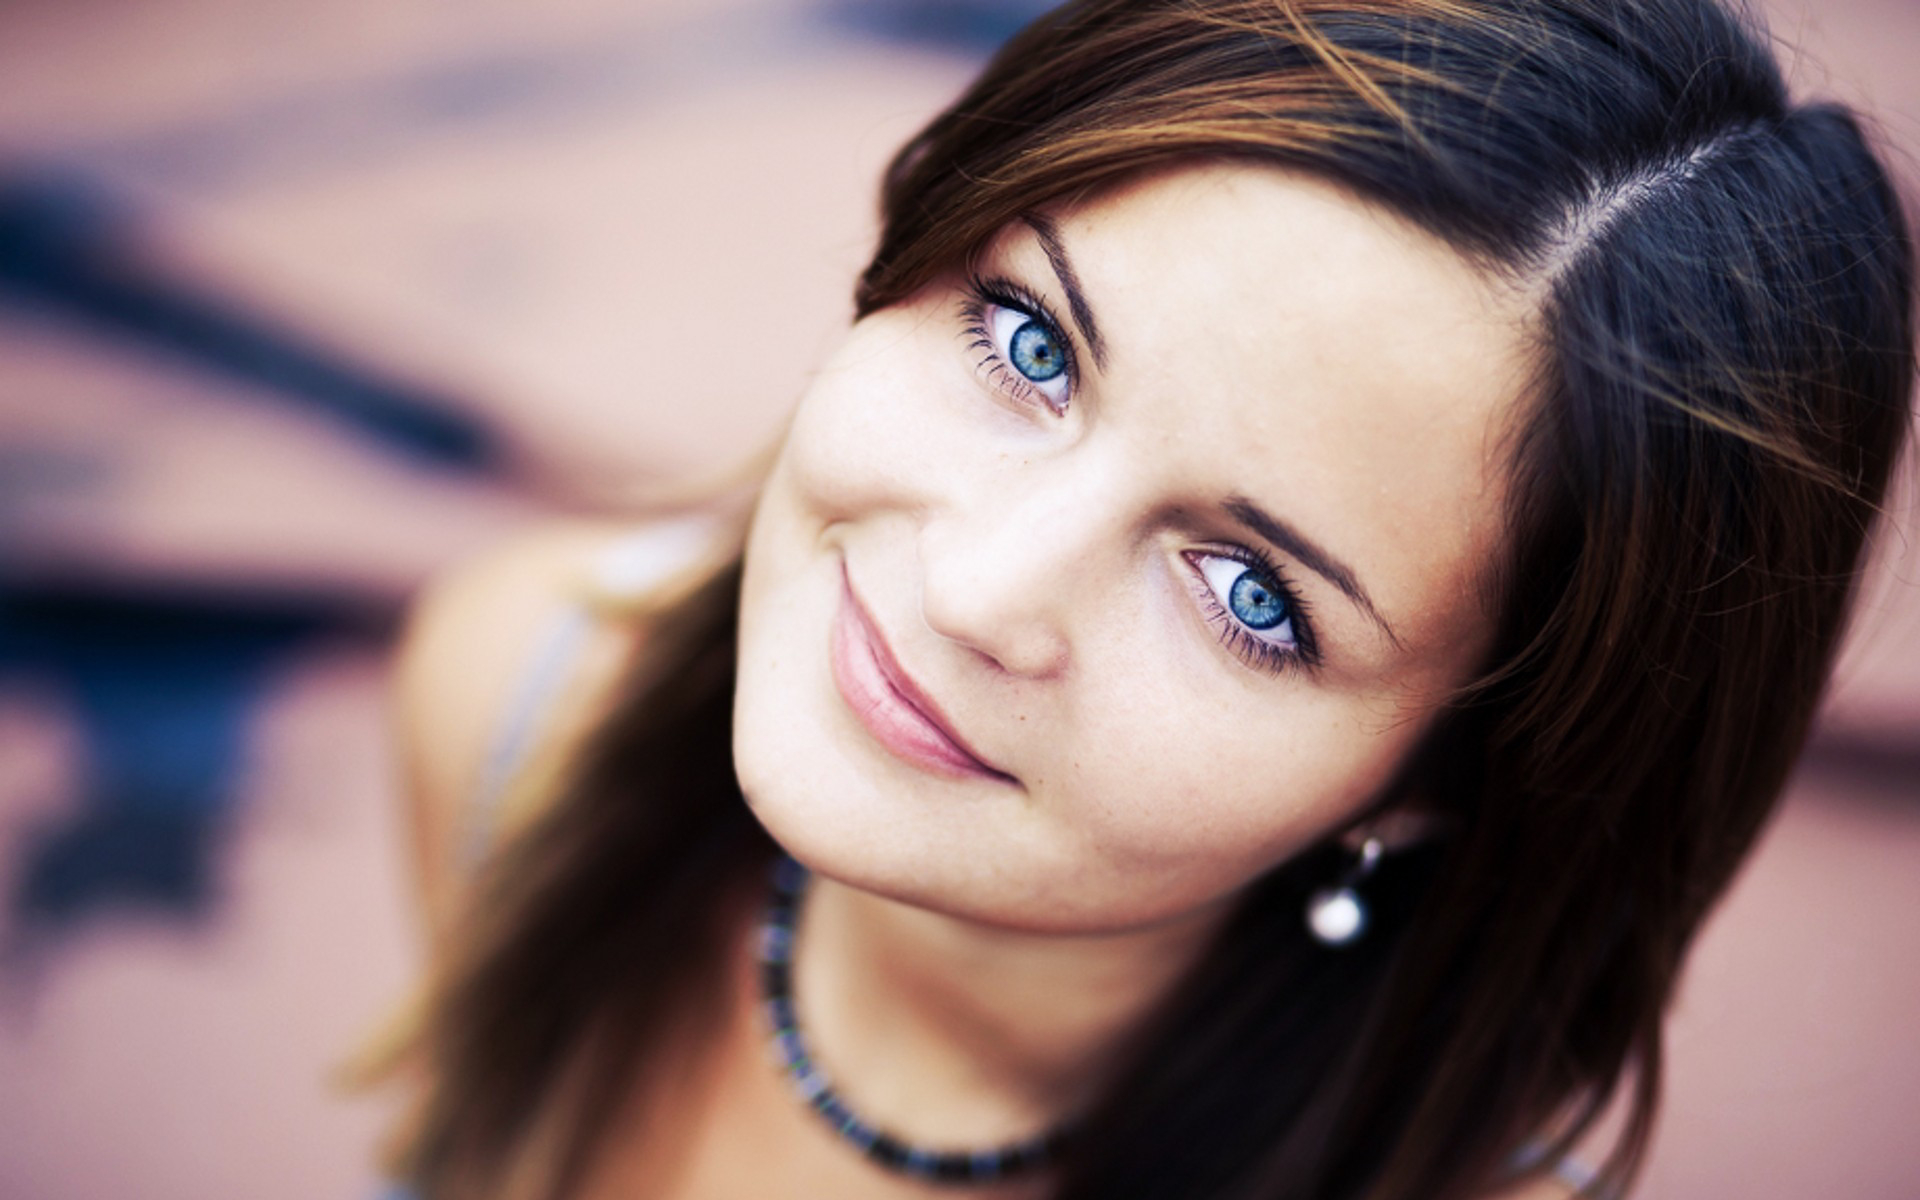 XFU-54: Pictures of Pretty Girl HD, 38 Cool Wallpapers